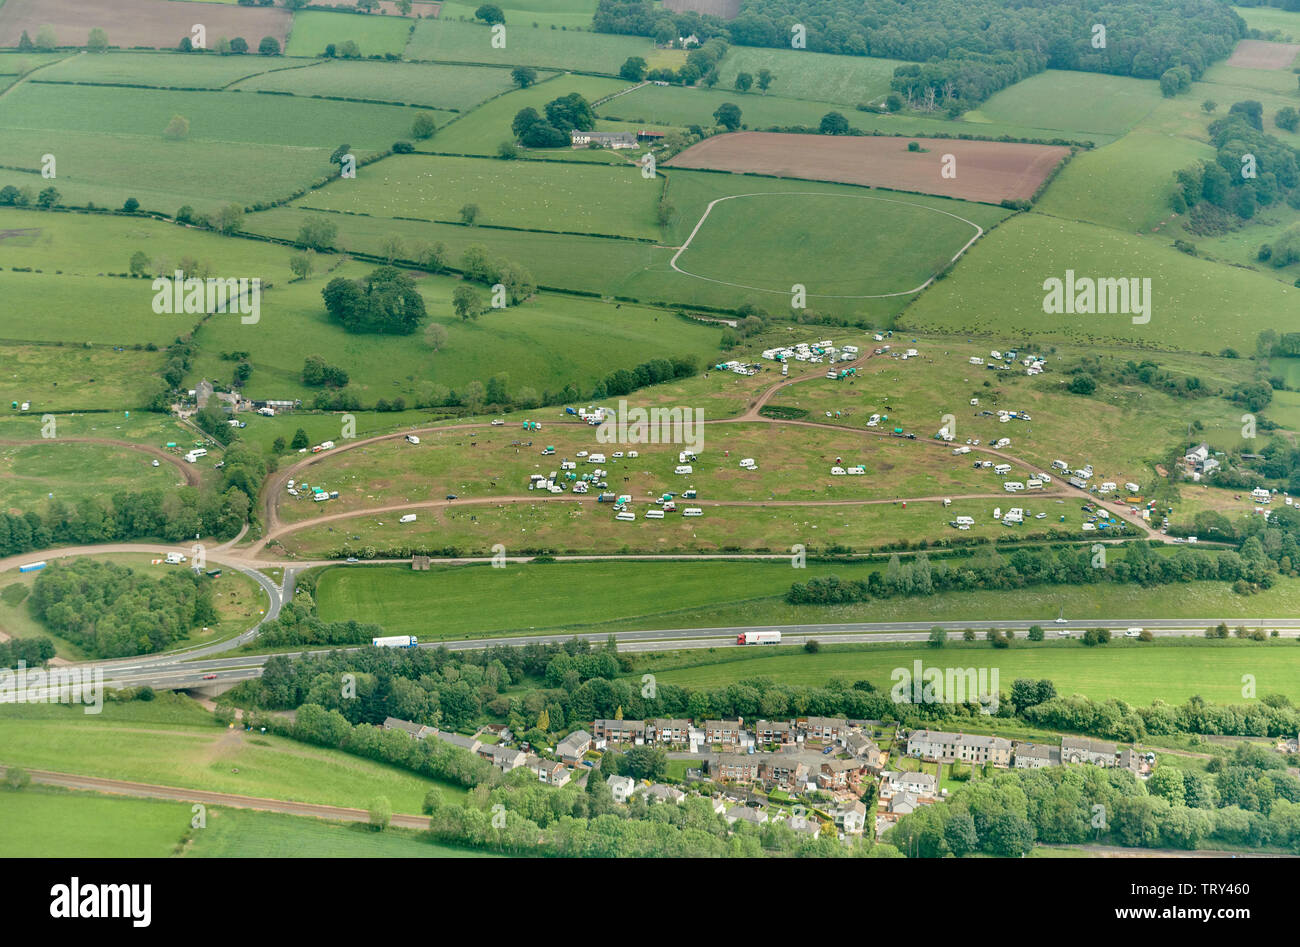 An aerial view of Appleby Fair, A66 trunk road foreground, Cumbria, Northern England, UK - Stock Image